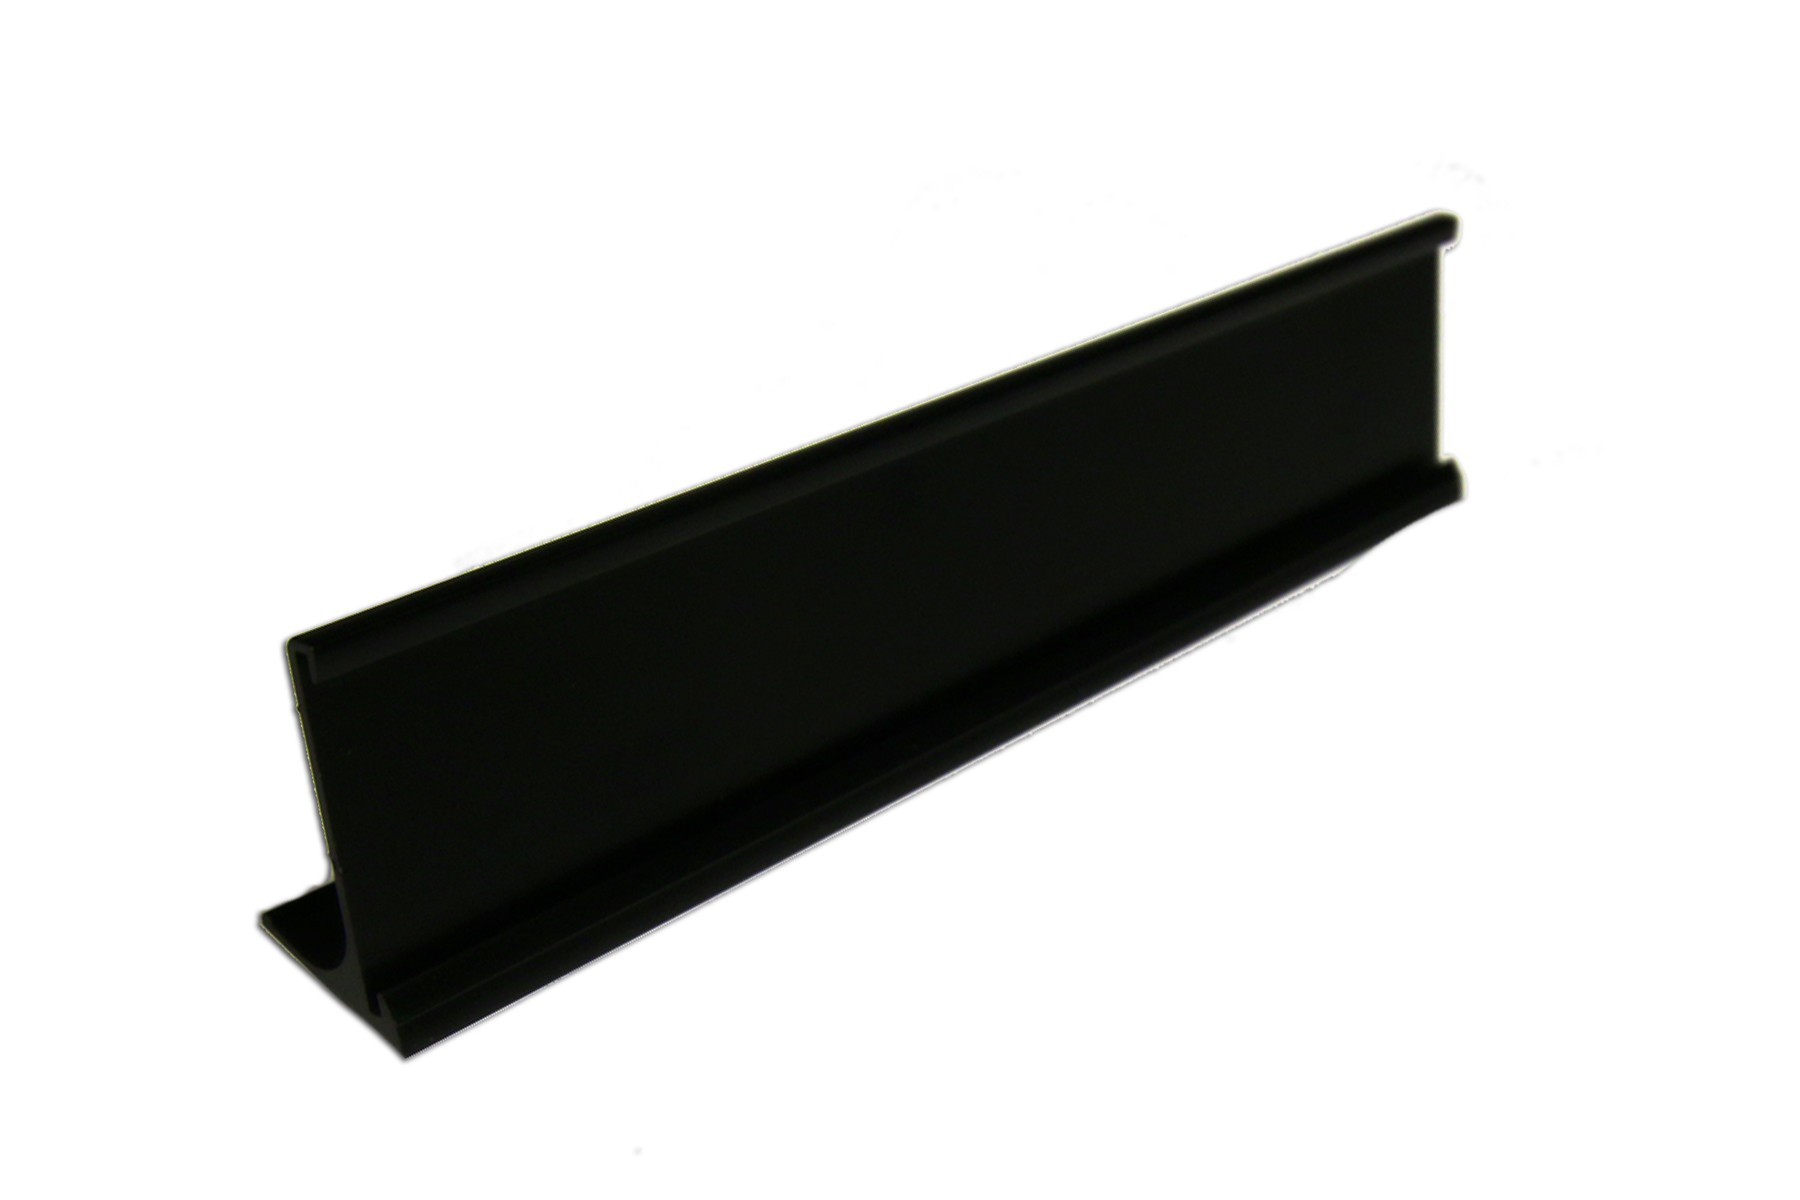 "1 1/2"" x 1/16"" x 10"" Desk Holder, Black"